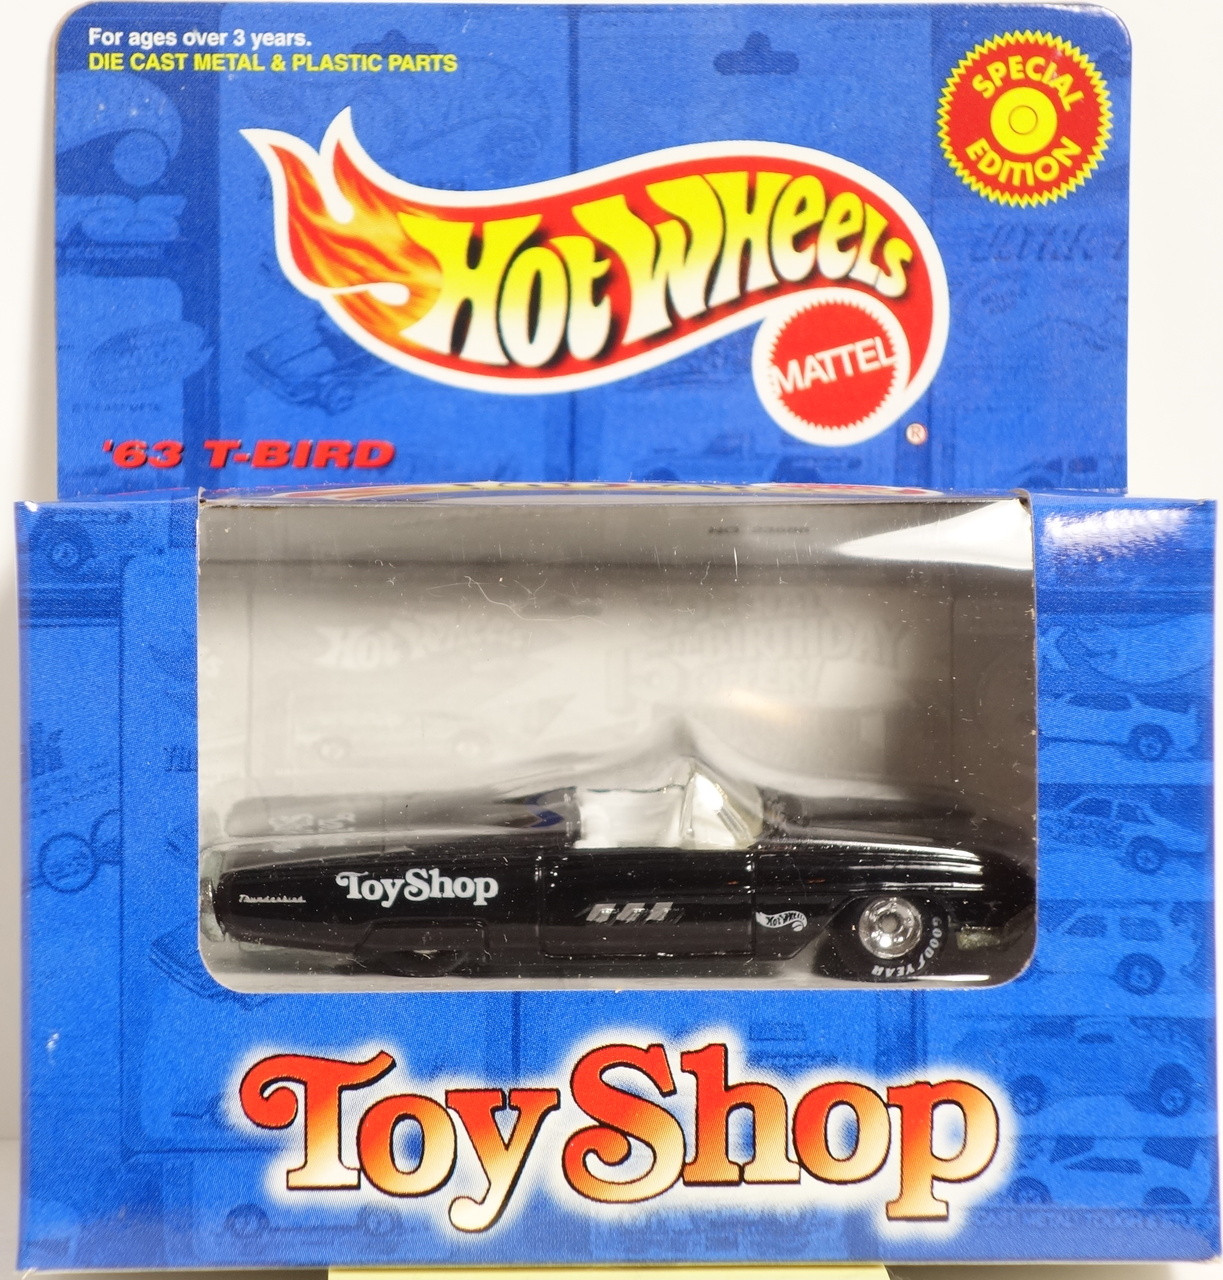 1998 Hot Wheels Toy Shop Exclusive 32 Ford Special Edition Car mattel